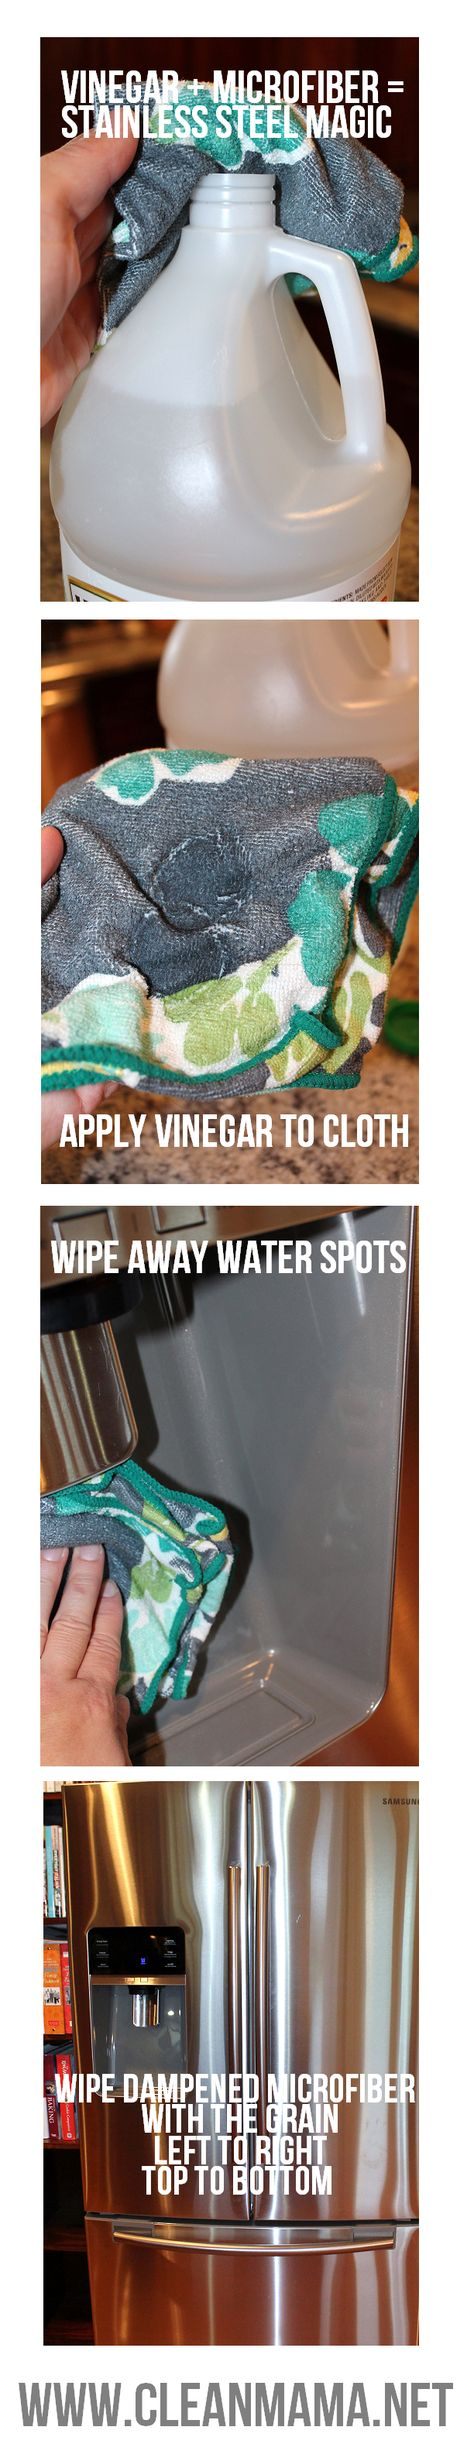 This is all you need for sparkling, streak free stainless steel appliances. Vinegar + Microfiber = Stainless Steel Magic via Clean Mama